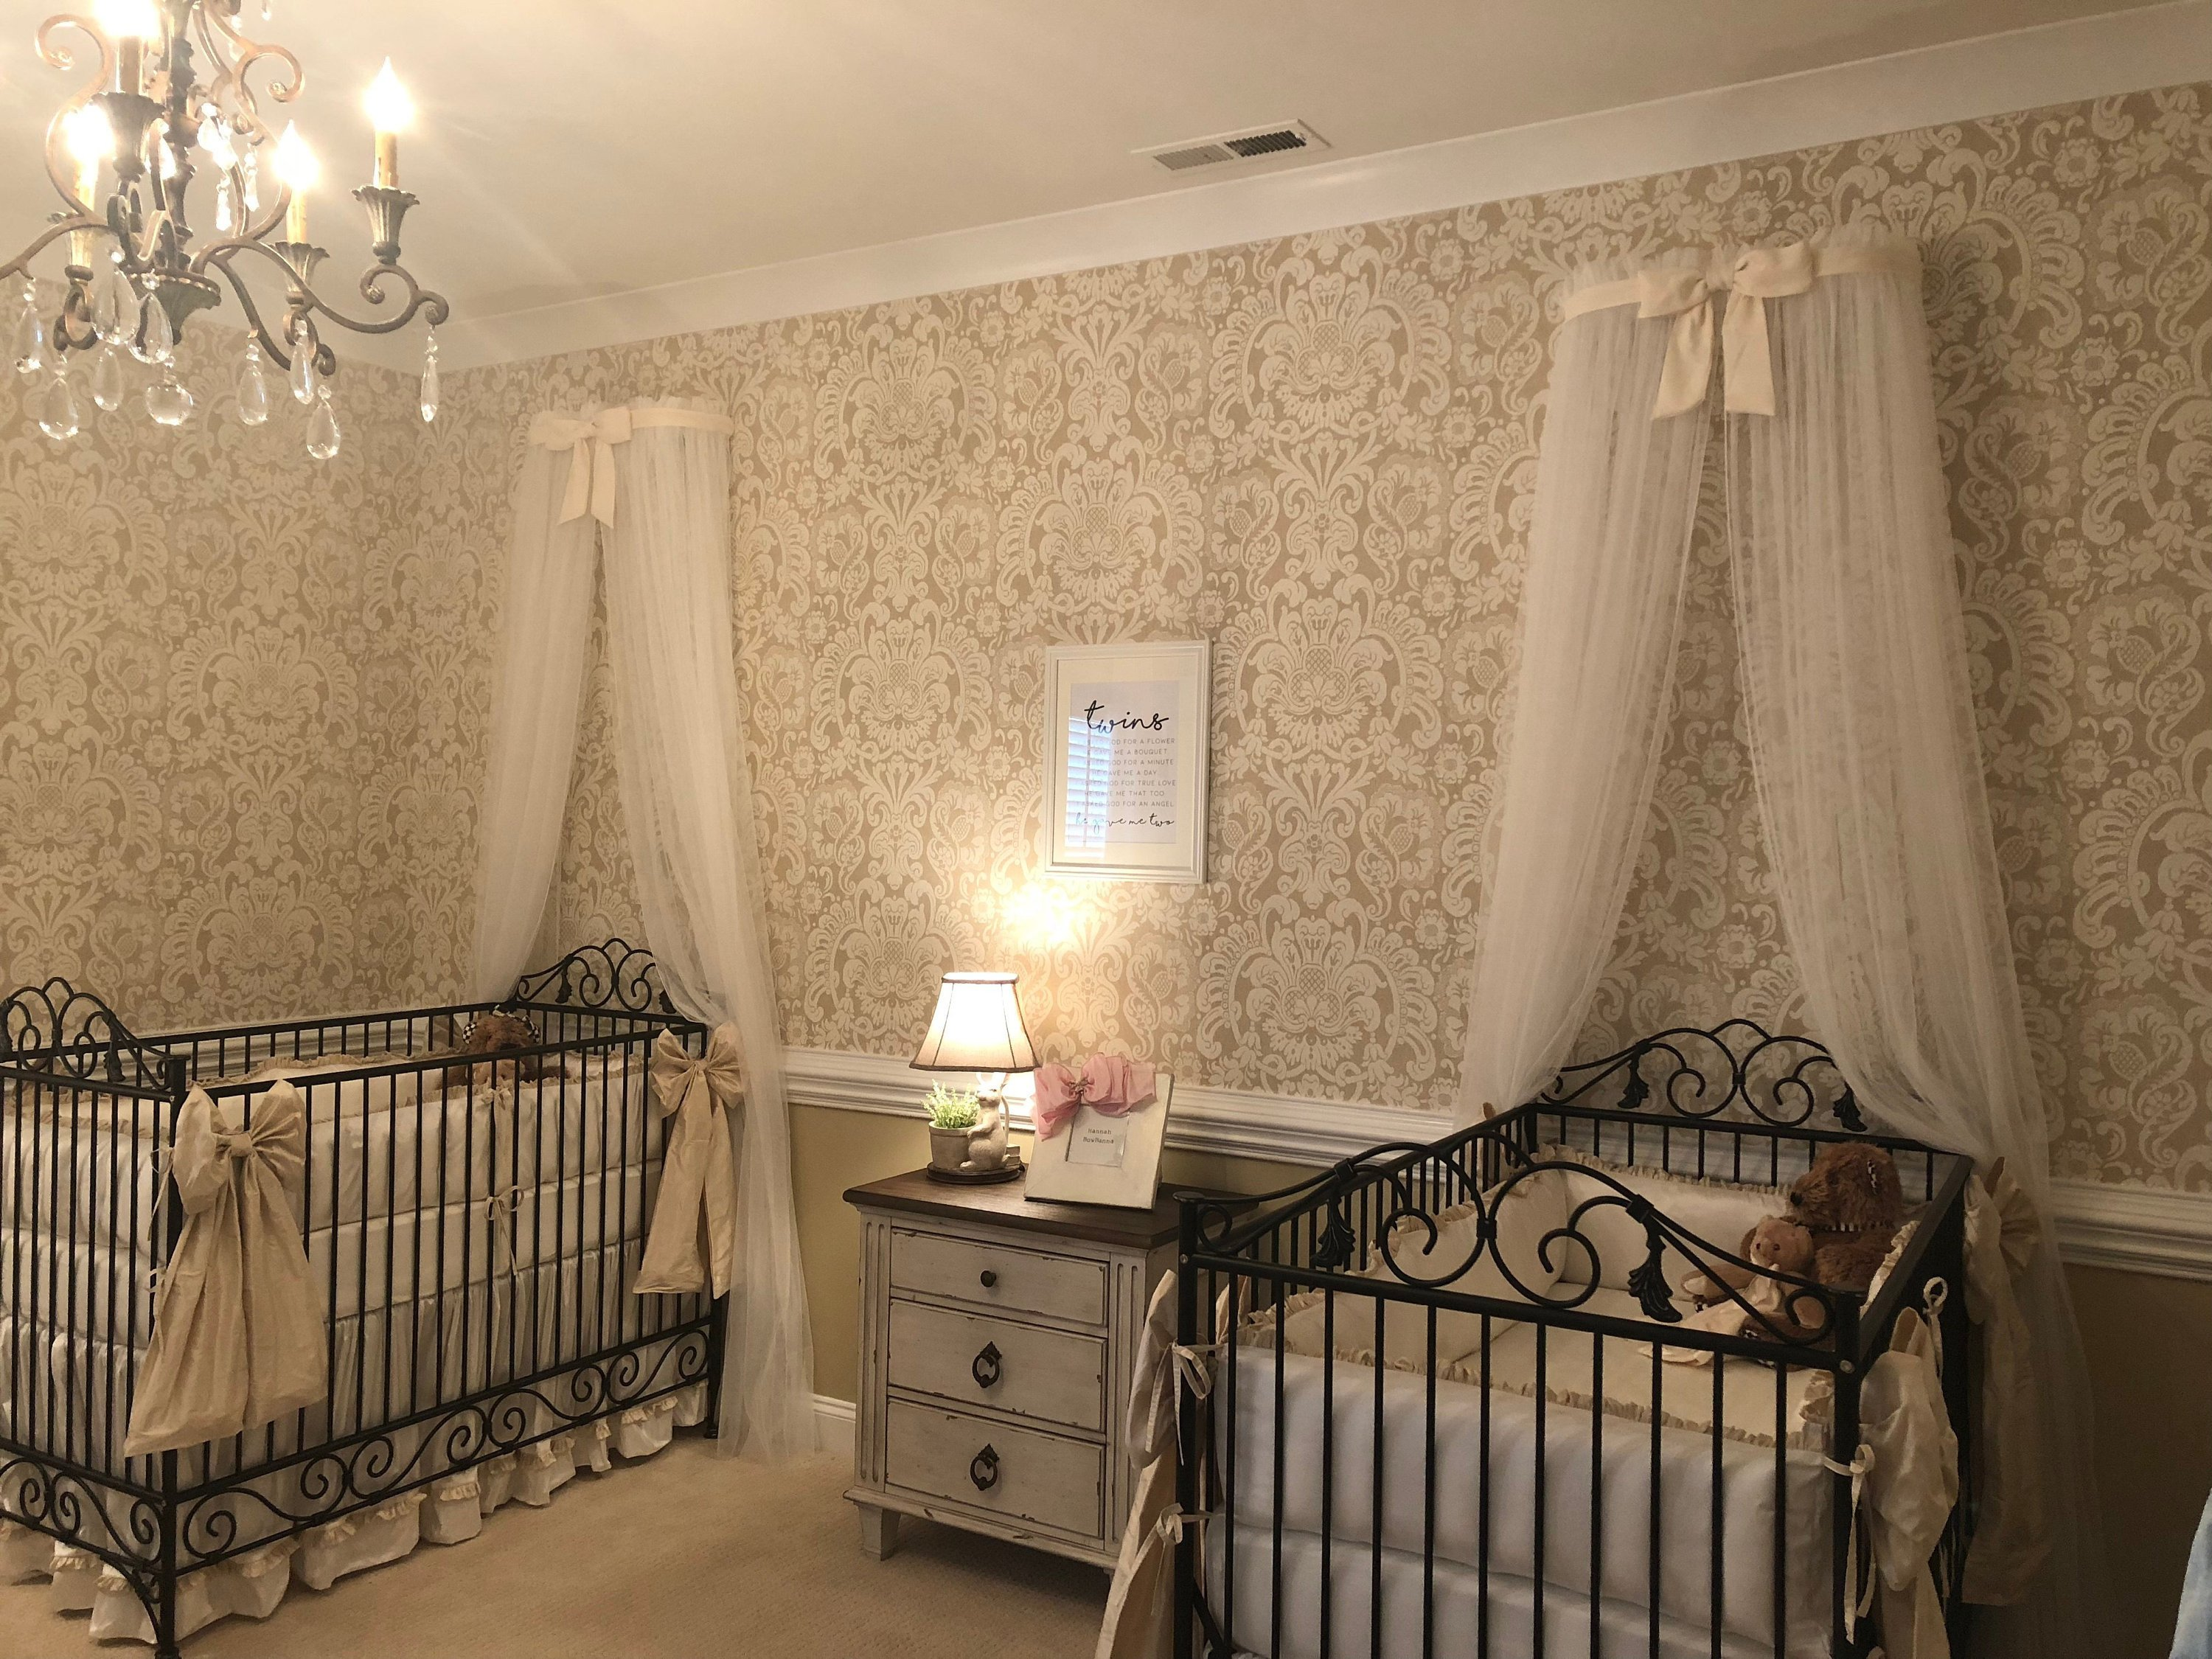 Girl Canopy Bedroom Set Beautiful Princess Bed Canopy Crown Twins Sisters Cream Ivory Bow Teester Cornice Coronet Crib Nursery Baby Sheer Curtain Custom so Zoey Boutique Sale